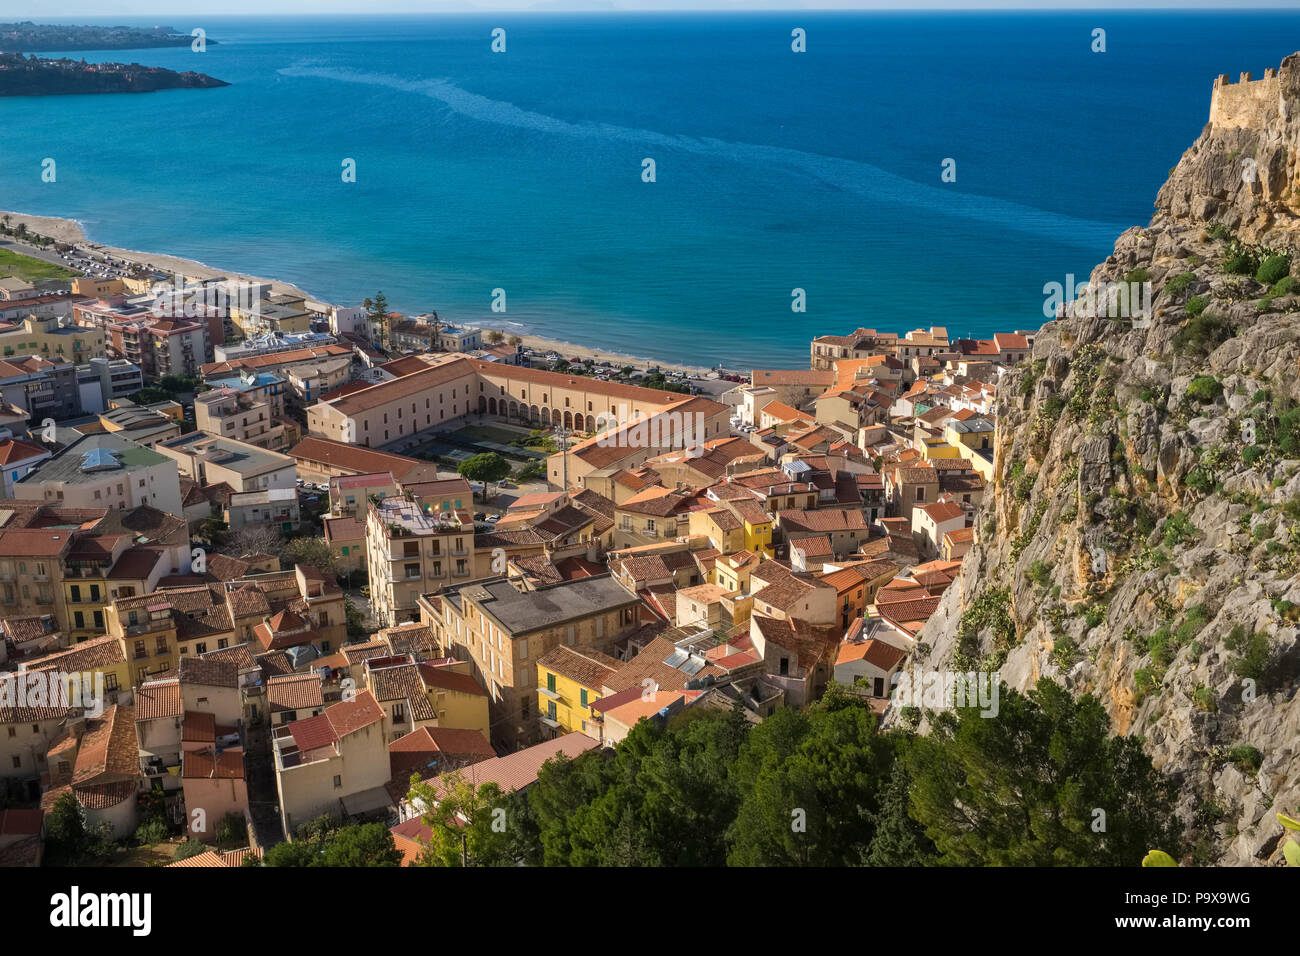 Aerial view of the city and red rooftops of Cefalu, Sicily, Italy, Europe - Stock Image